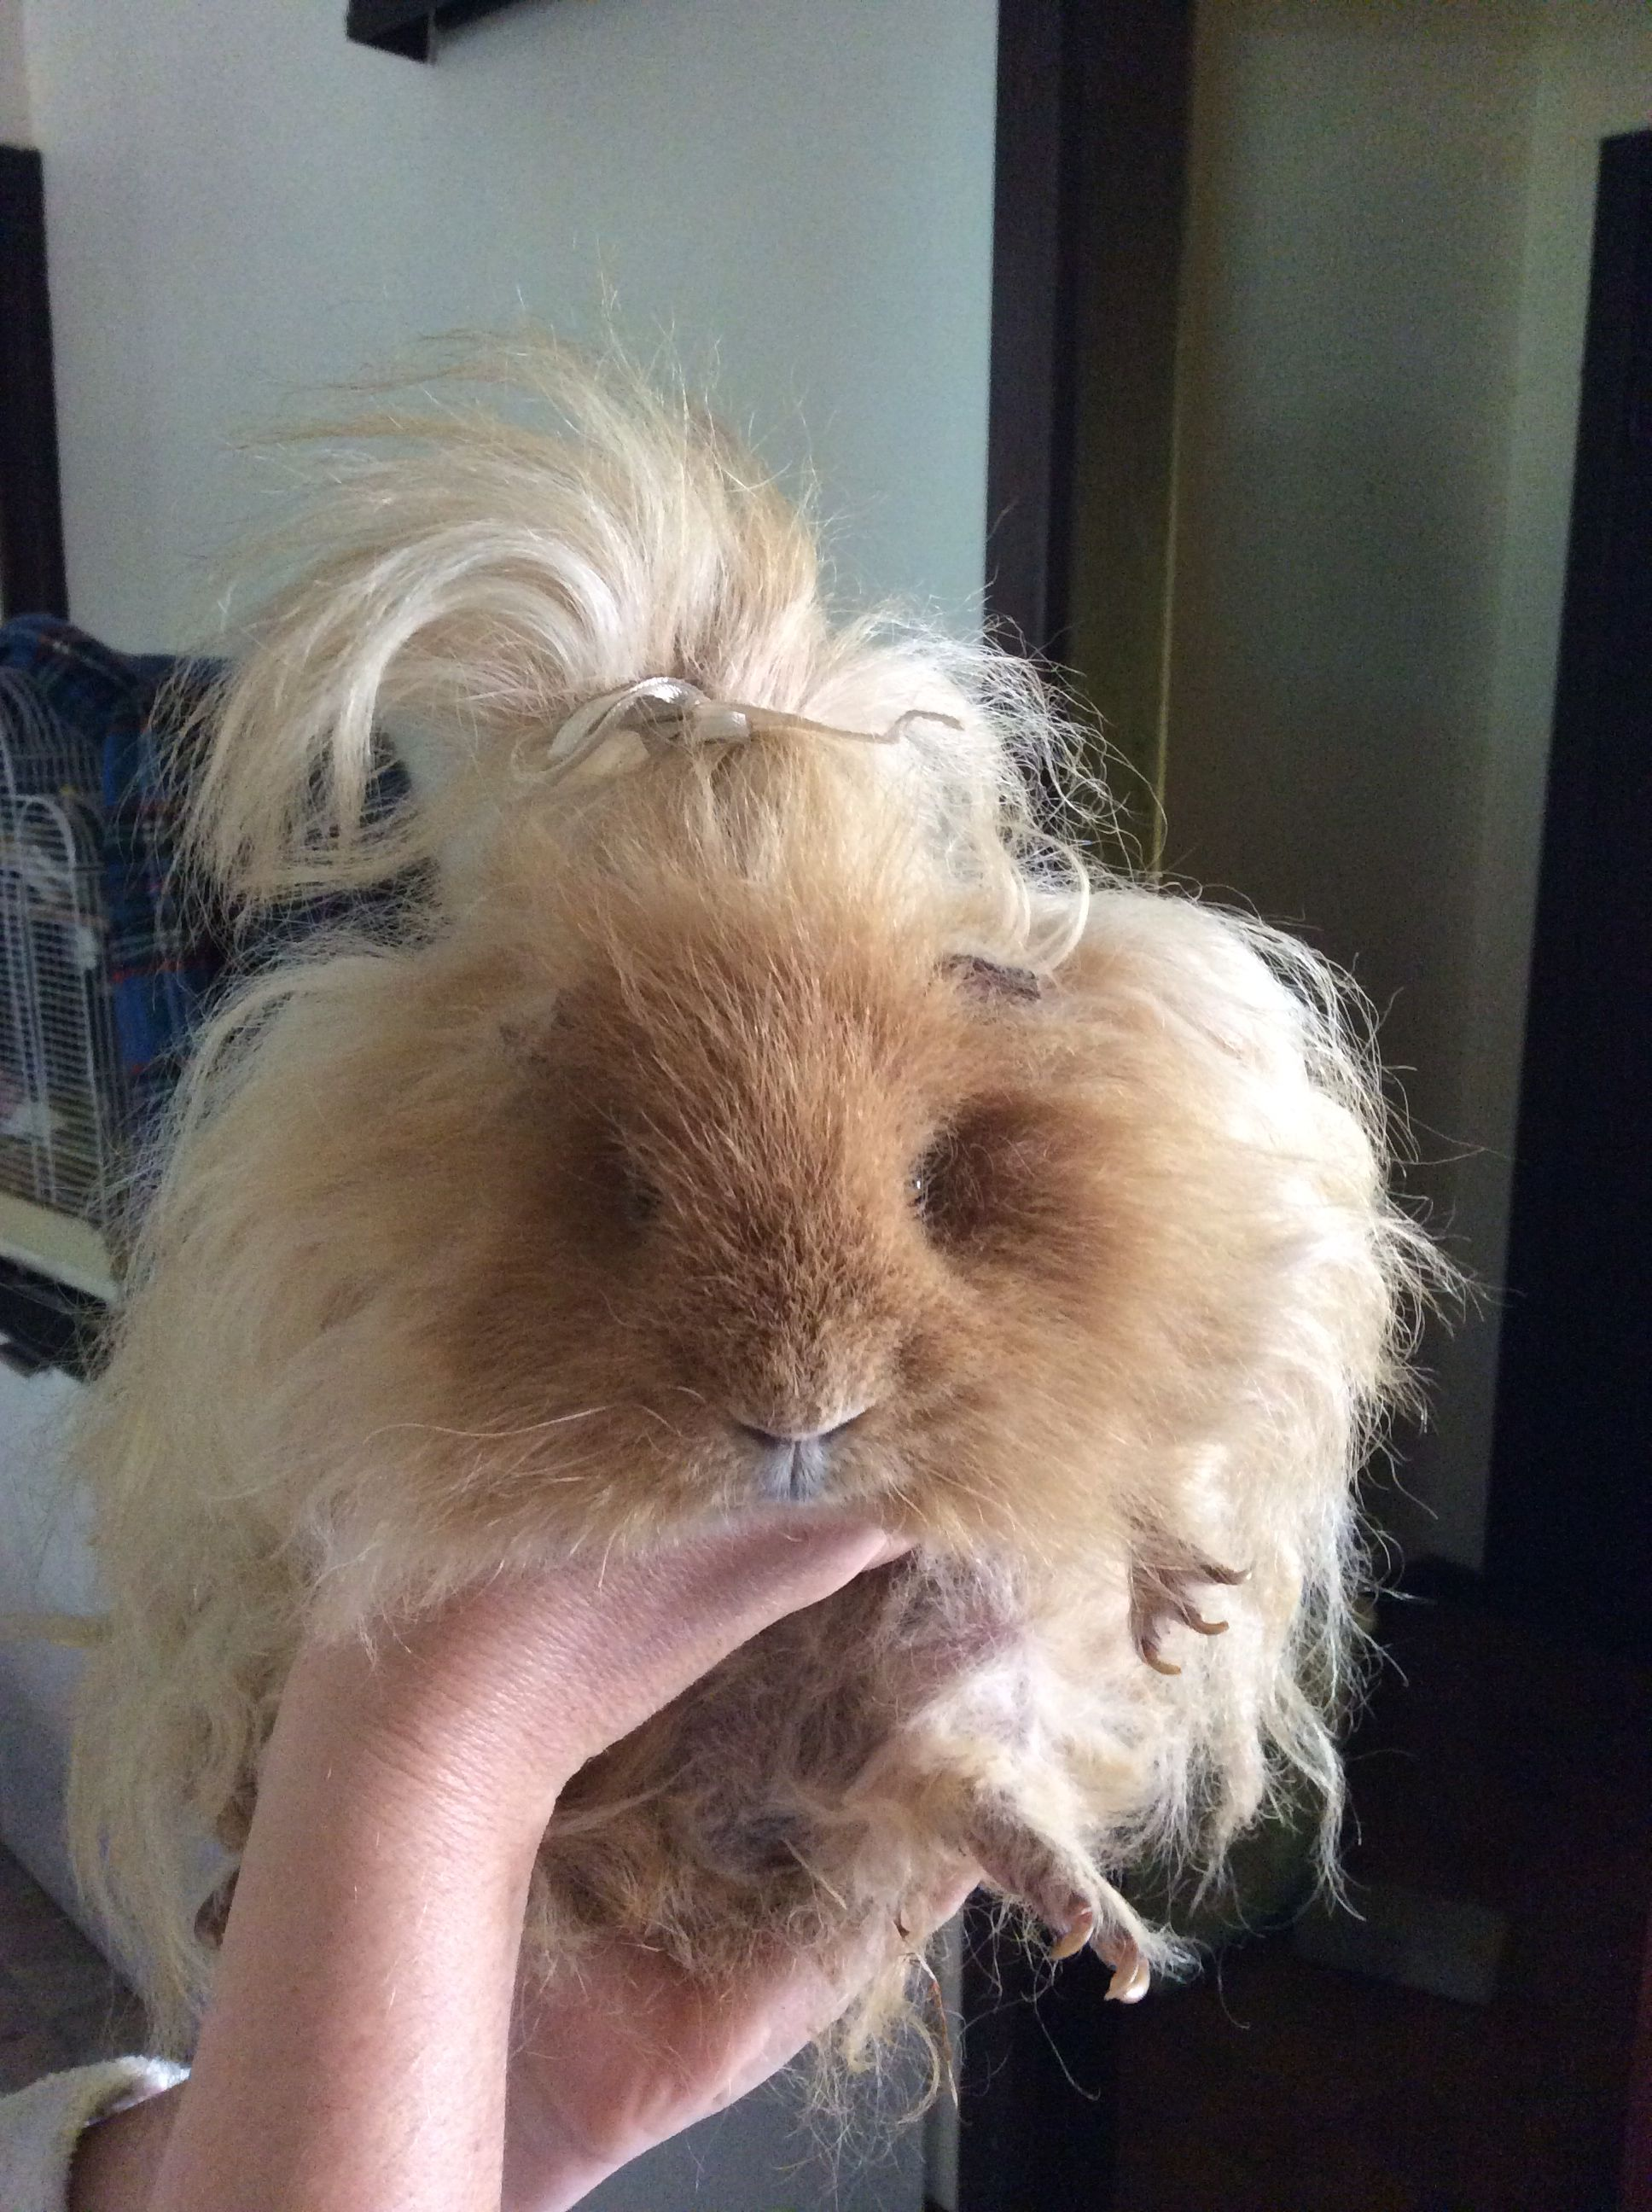 Fluffy overload...believe it or not this is actually a guinea pig.OMG check out the hair pin! So cute